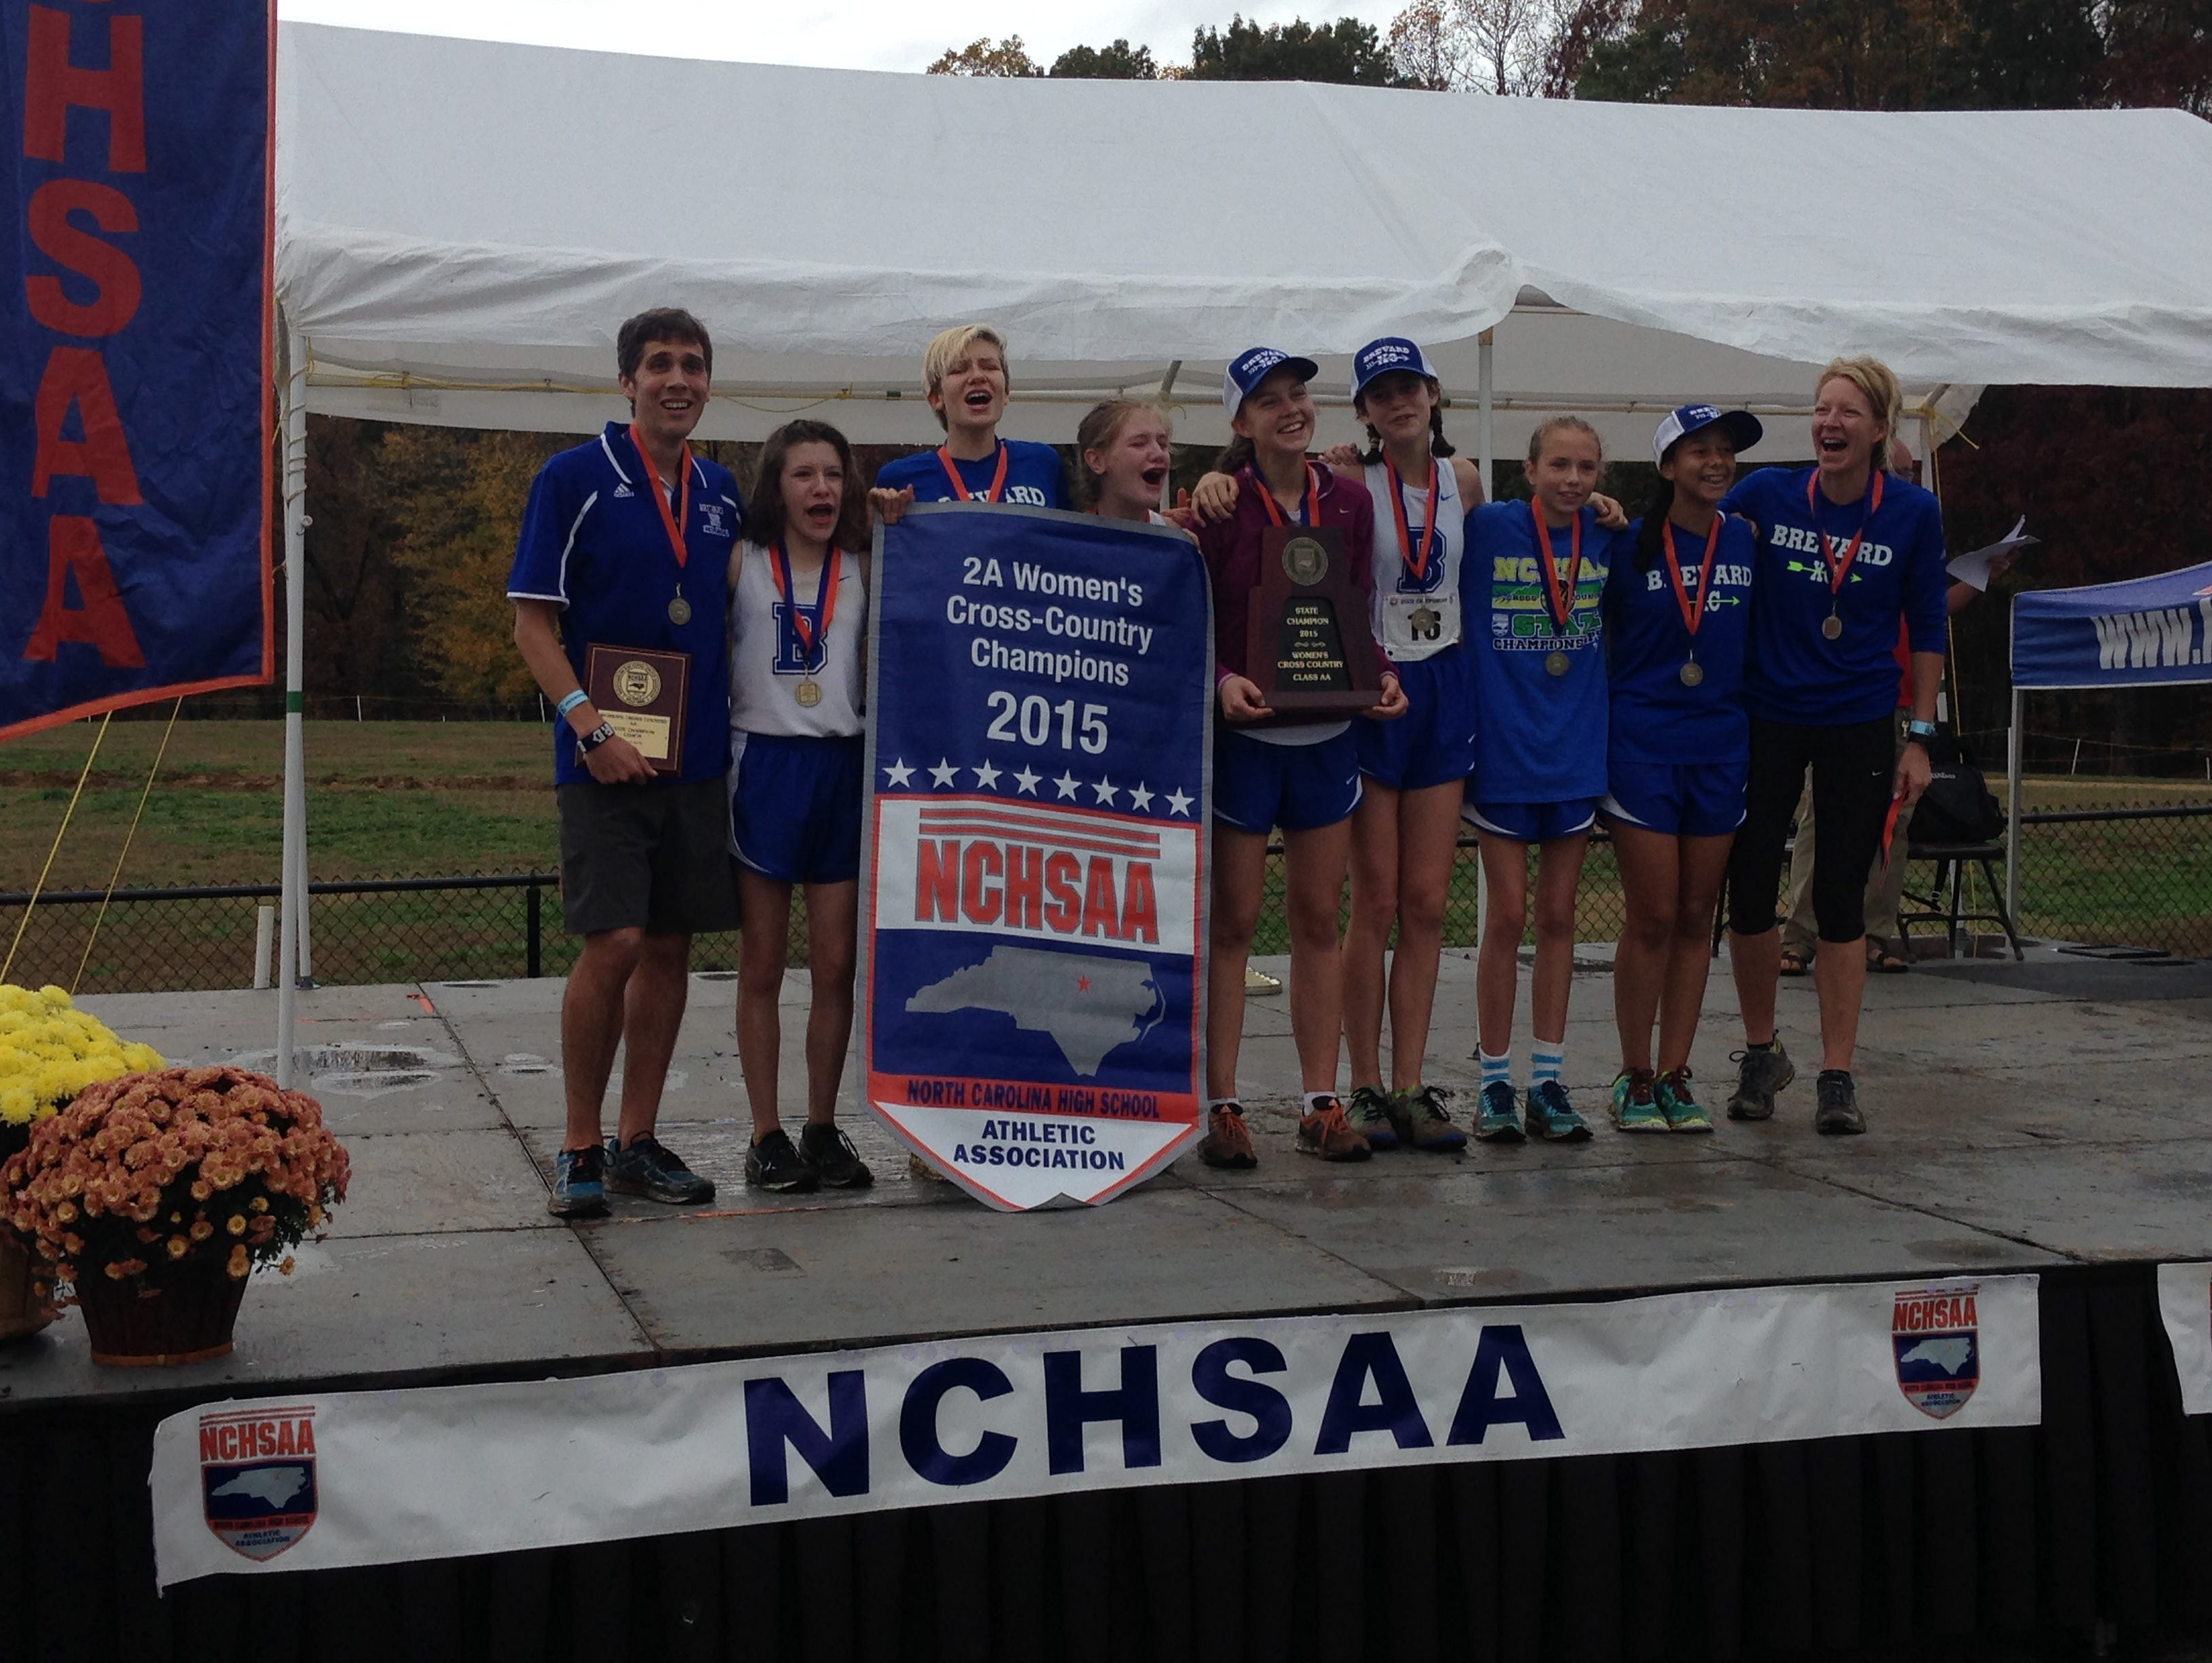 Brevard won the NCHSAA 2-A cross country championship earlier this month.